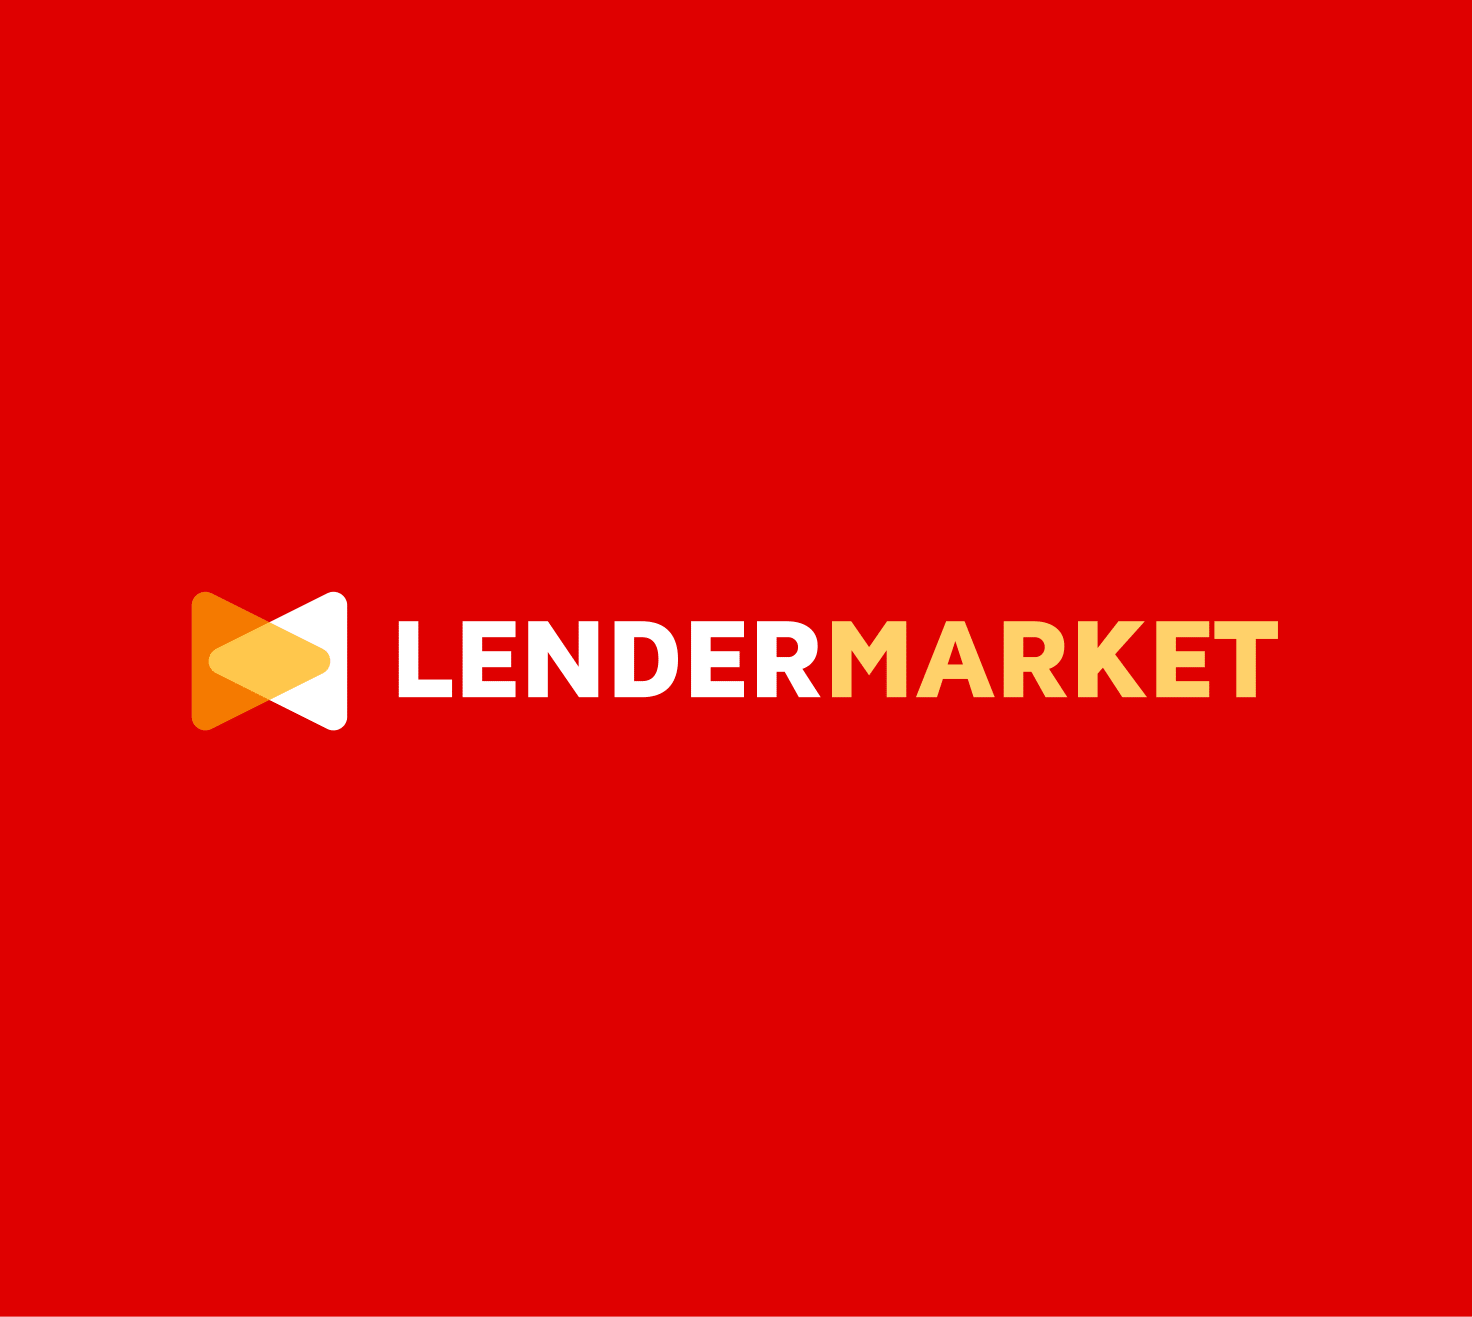 Logo Of P2P Investment Platform Lendermarket